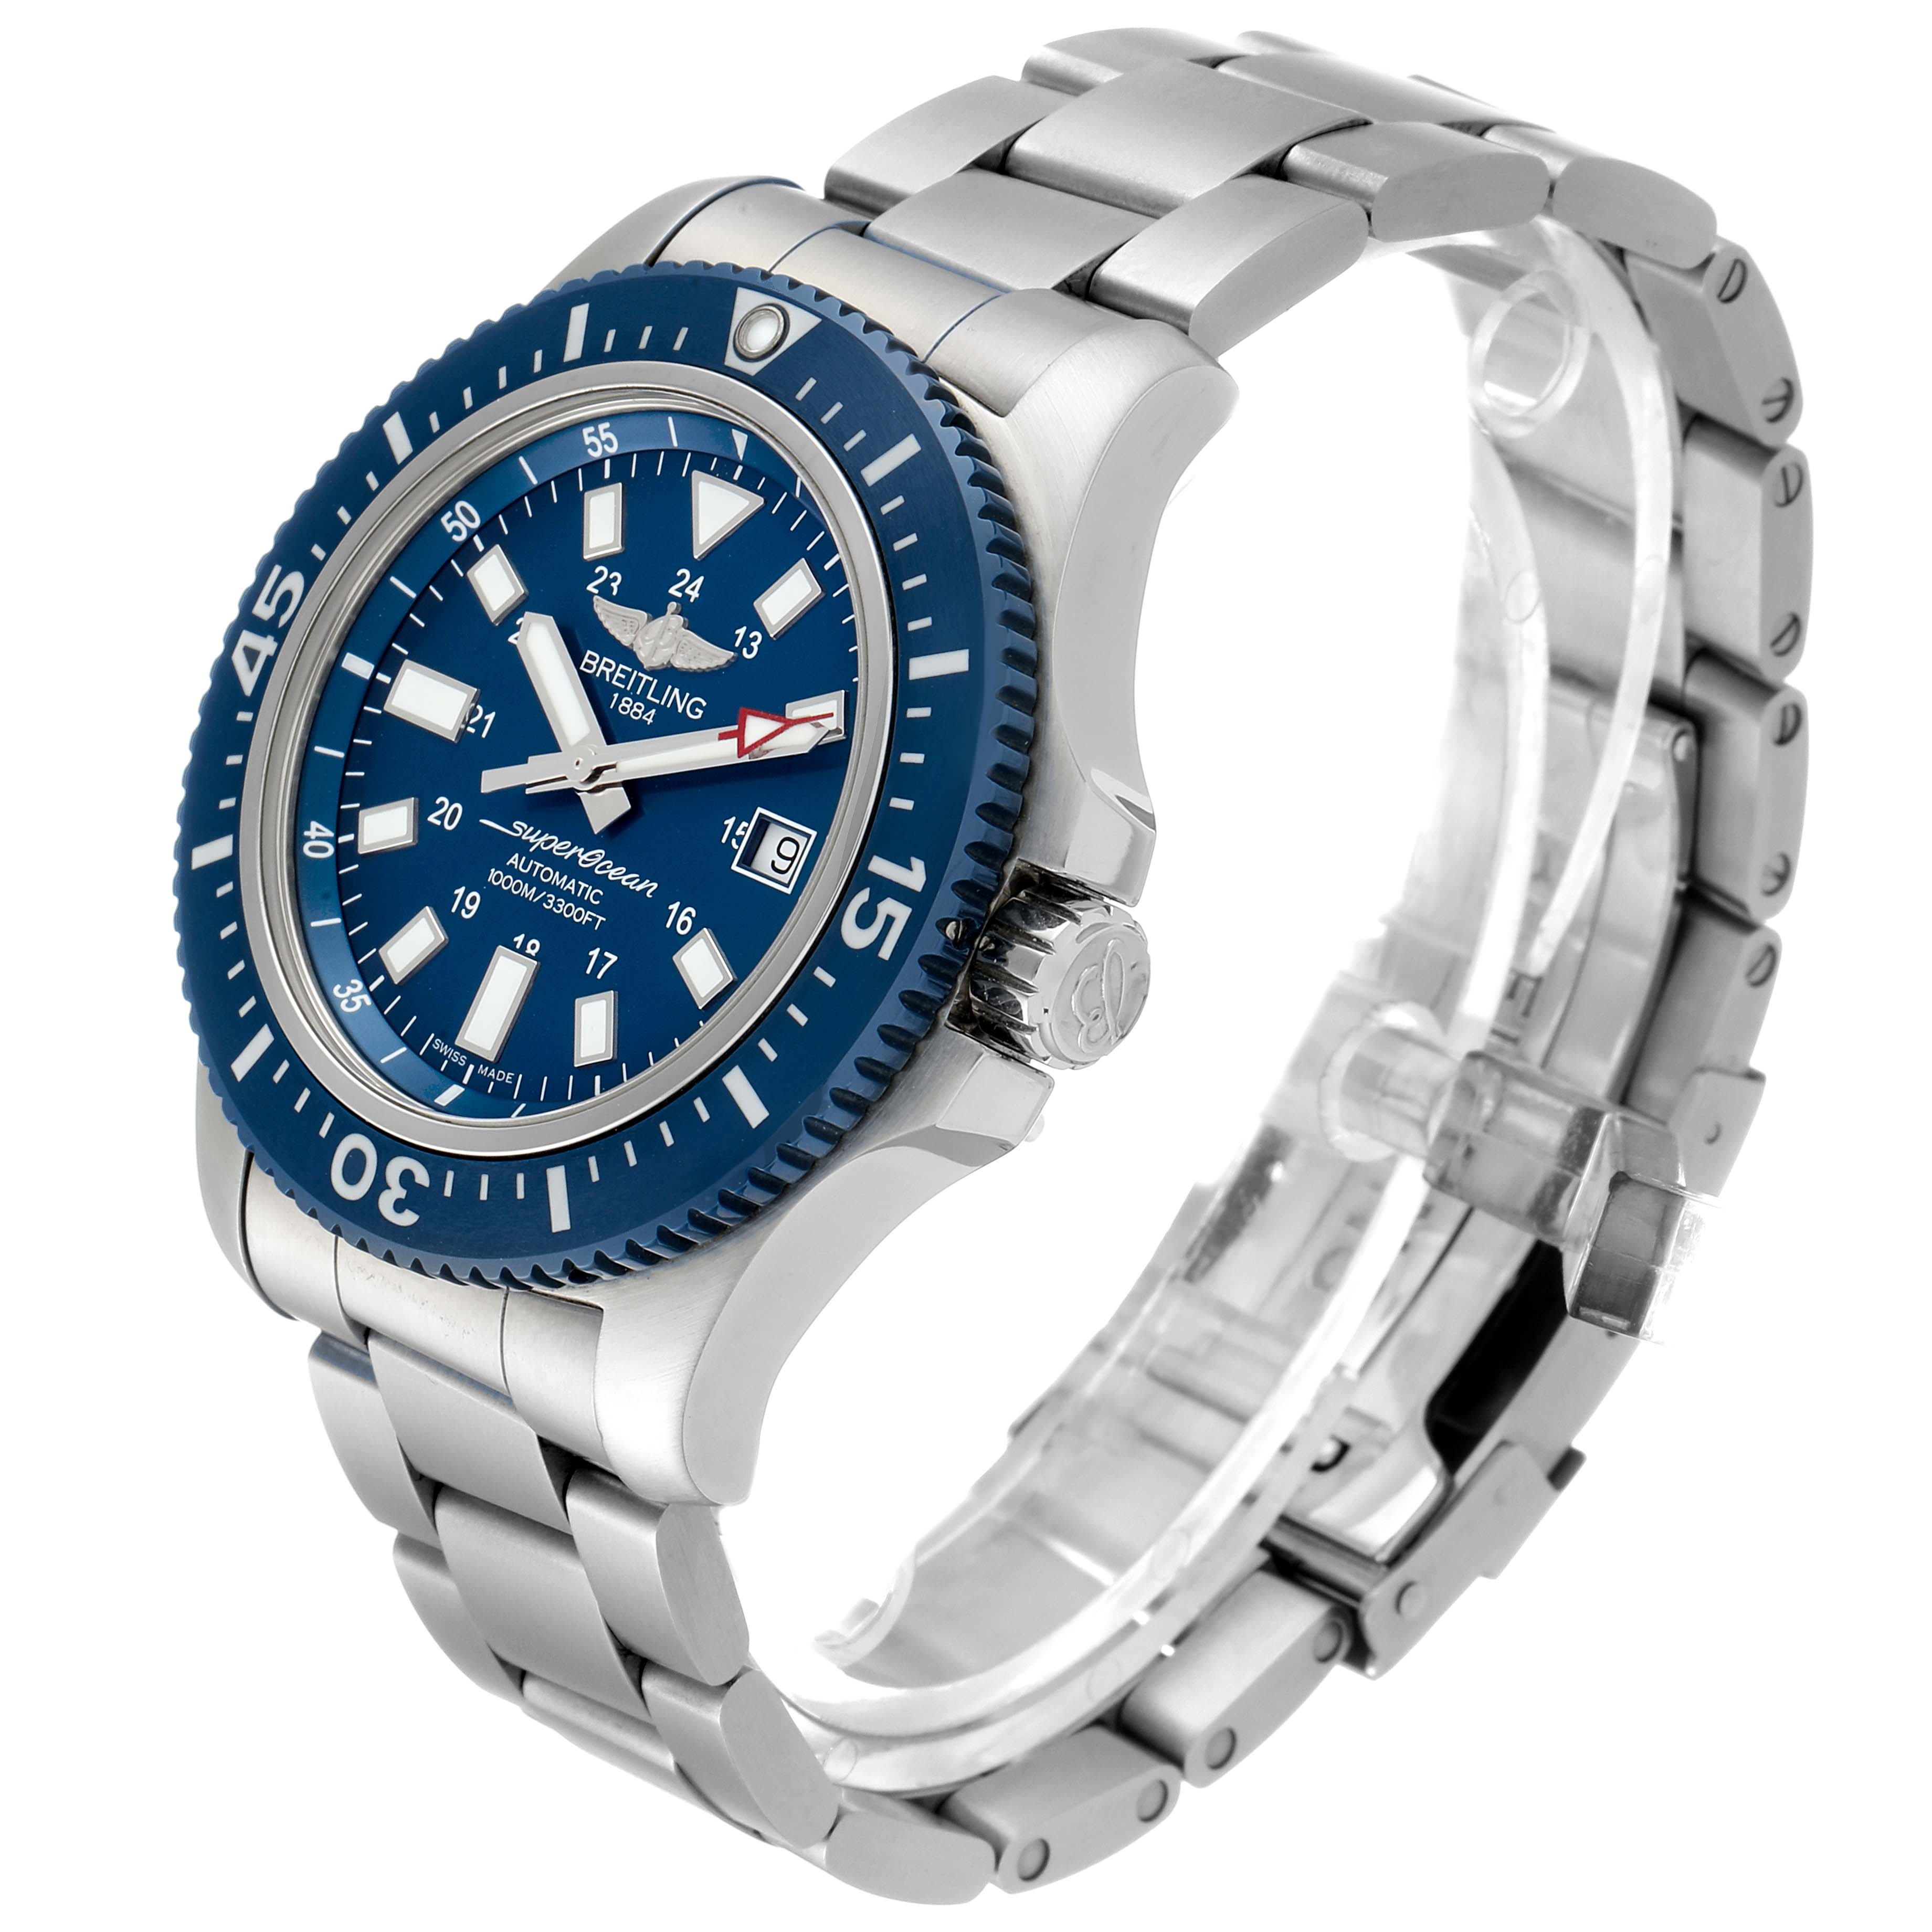 Breitling Aeromarine Superocean 44 Blue Dial Watch Y1739310 Box Papers SwissWatchExpo